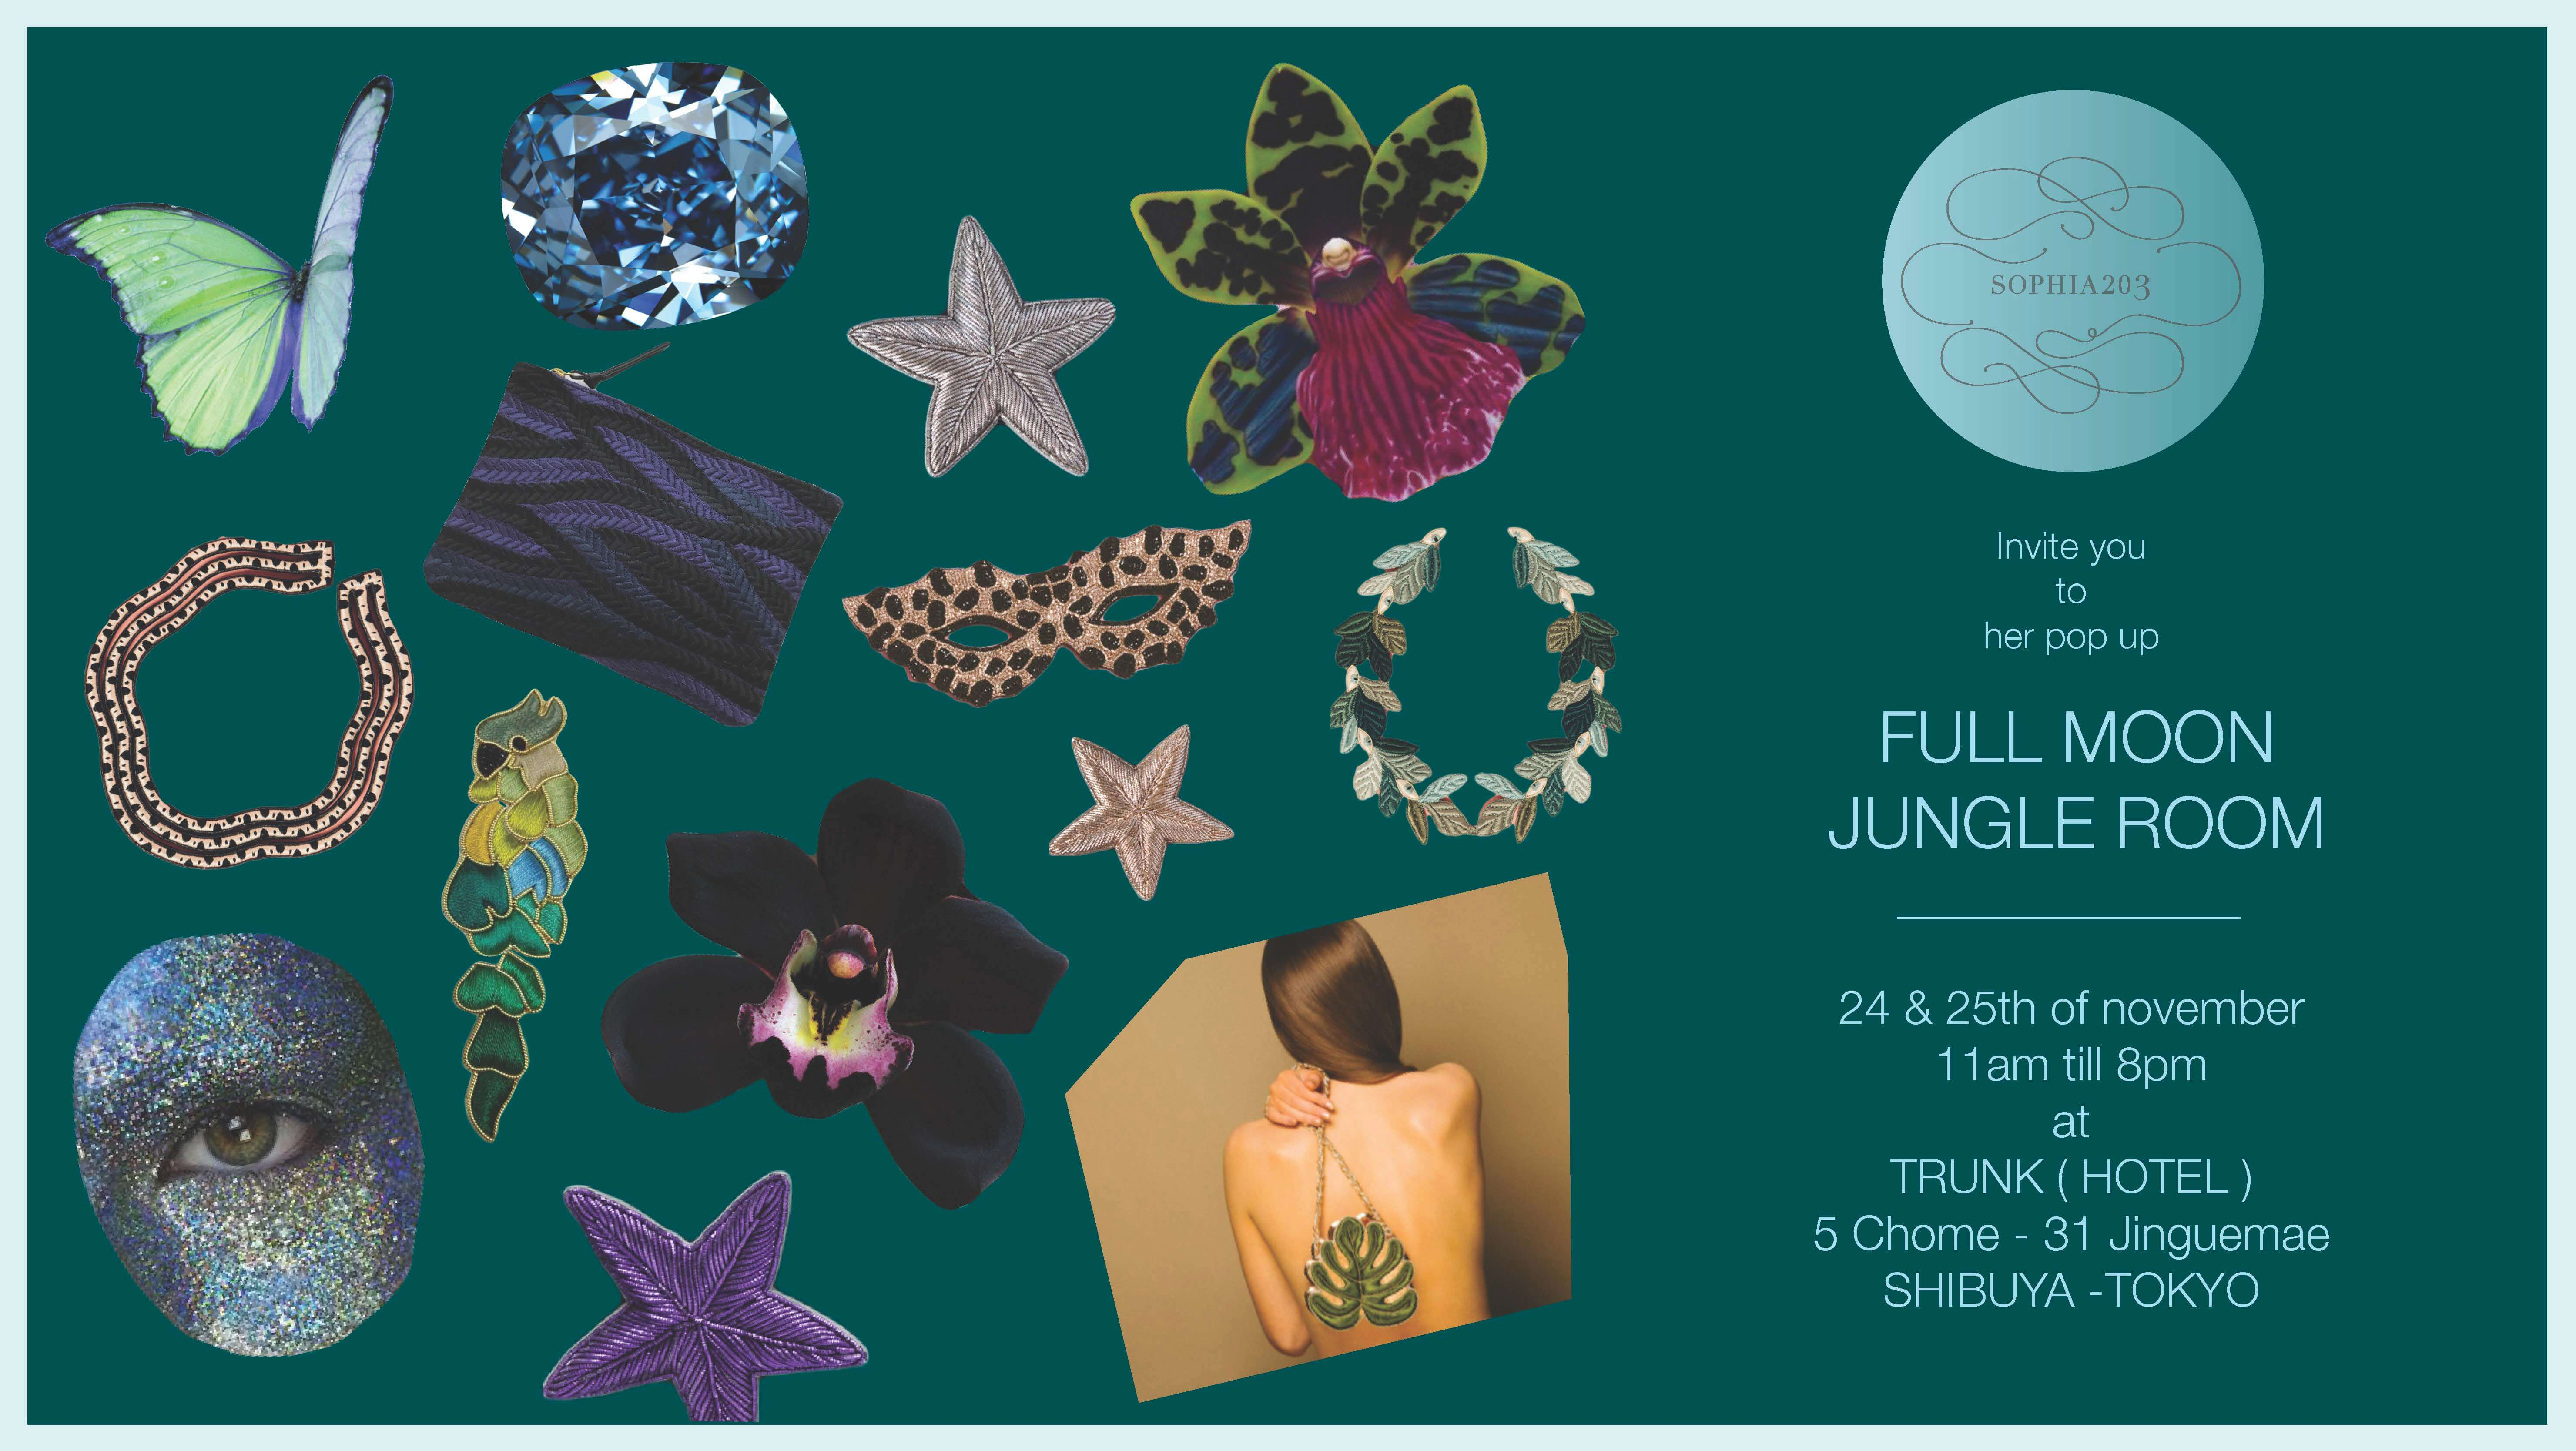 "SOPHIA 203 ""FULL MOON JUNGLE ROOM"" POPUP"